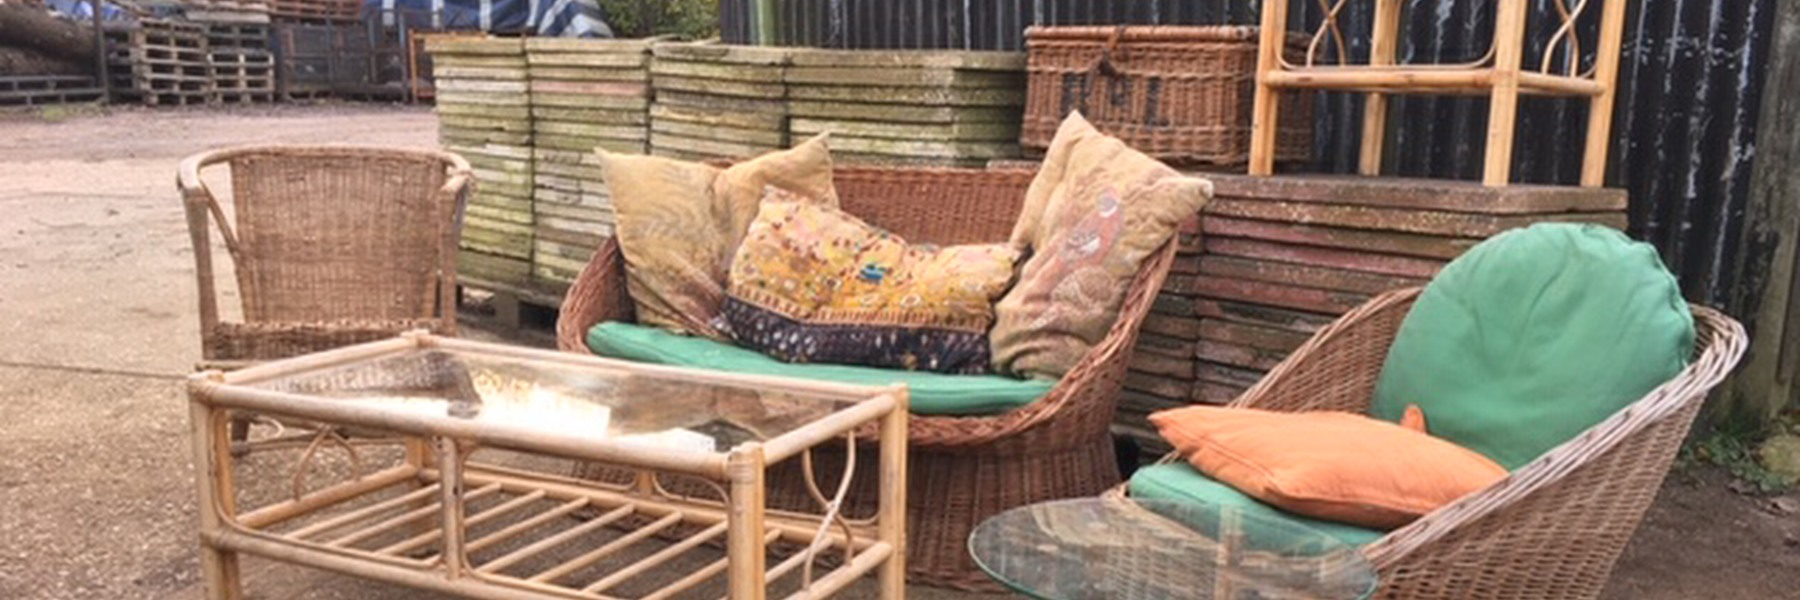 treesave reclamation yard with antiques and interiors suffolk essex